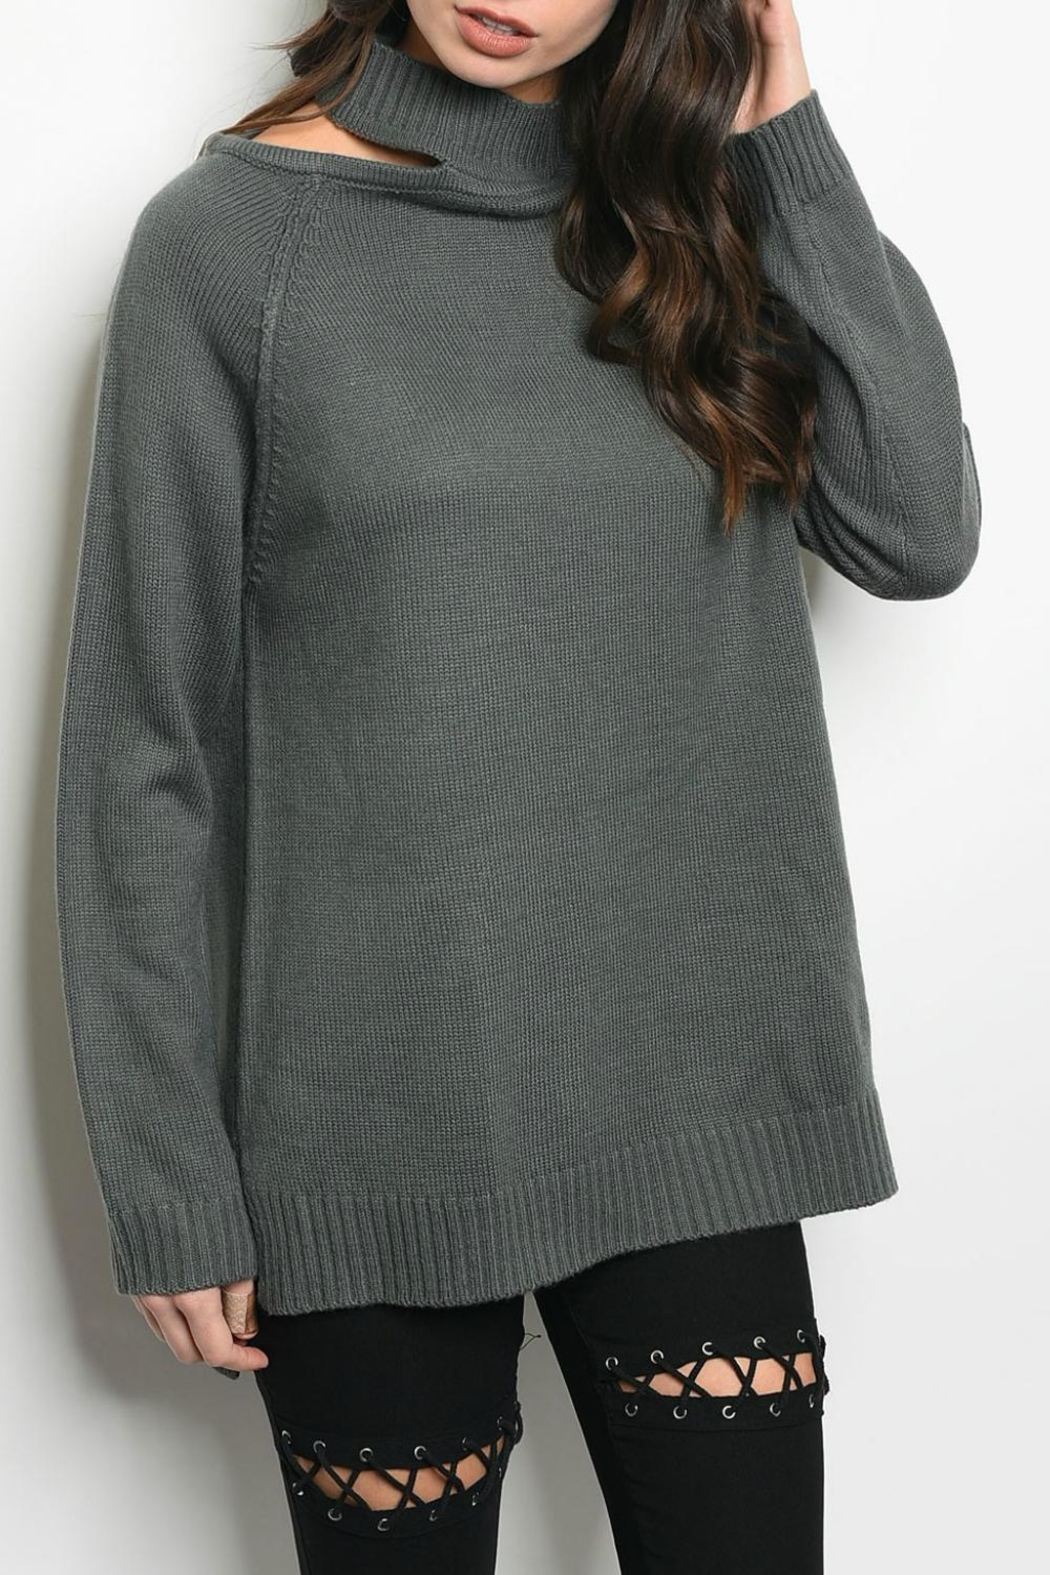 LoveRiche Charcoal Sweater - Main Image